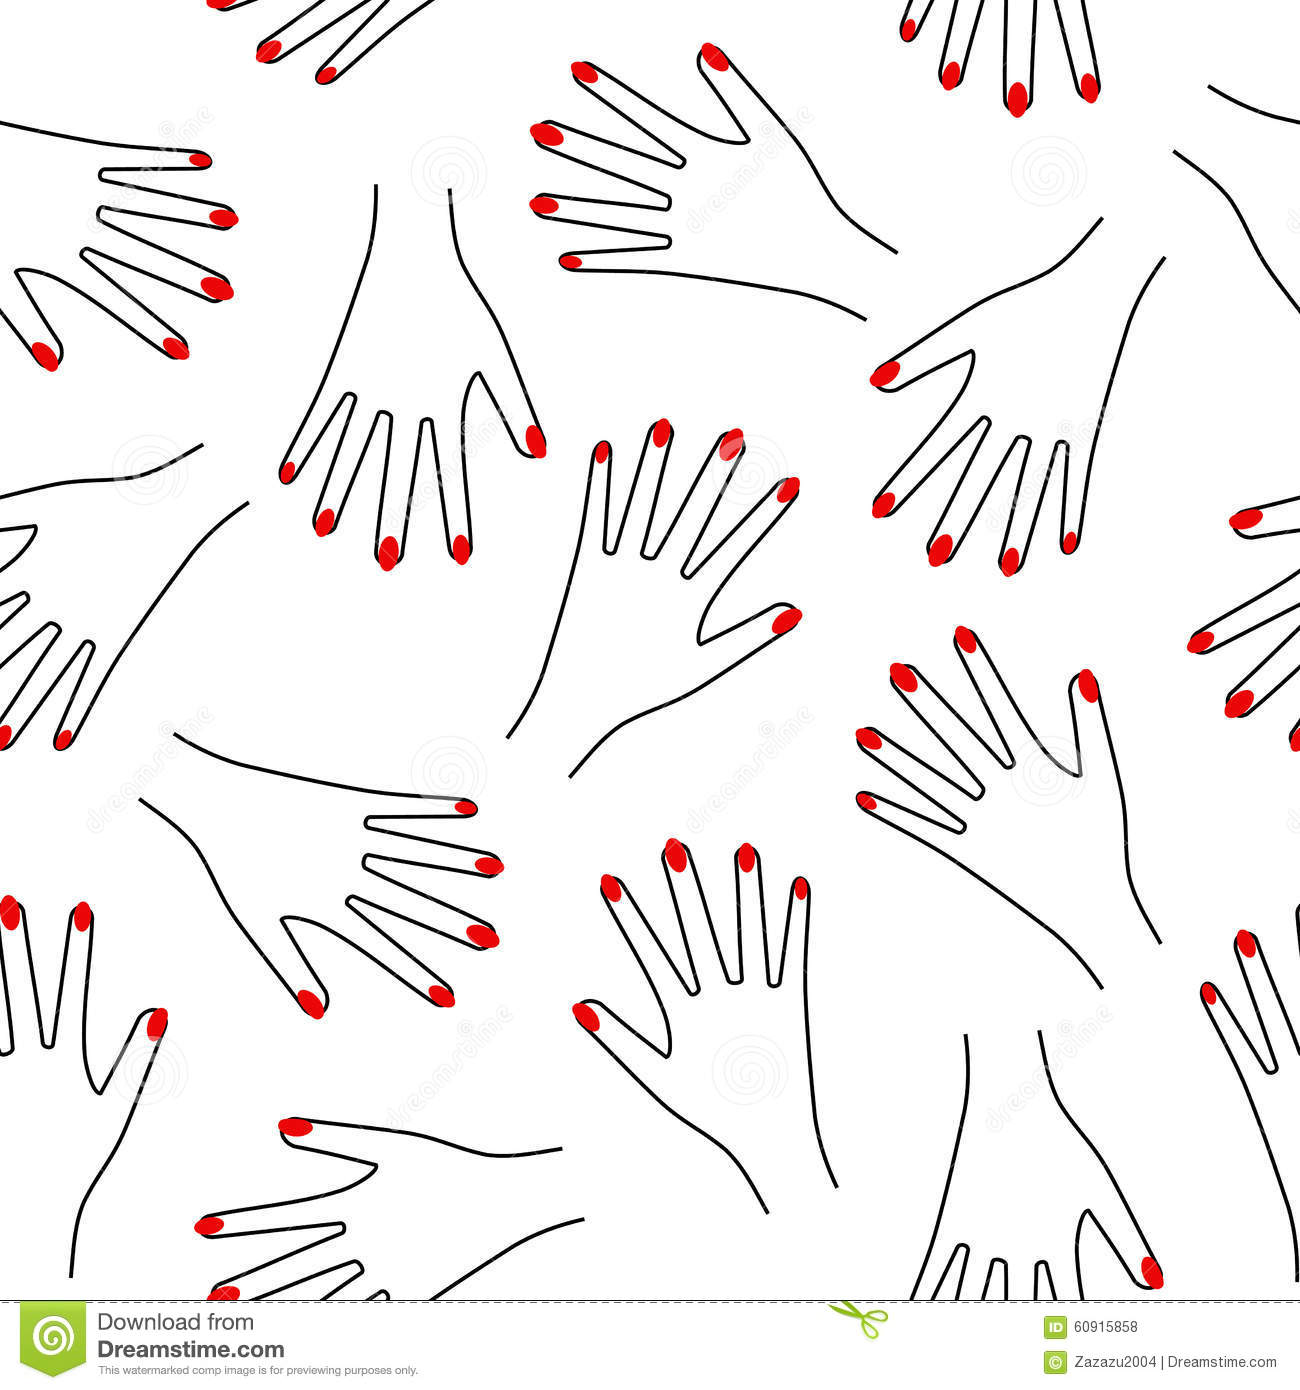 Seamless hand pattern on white background. Cute funny girlish illustration with red nails.